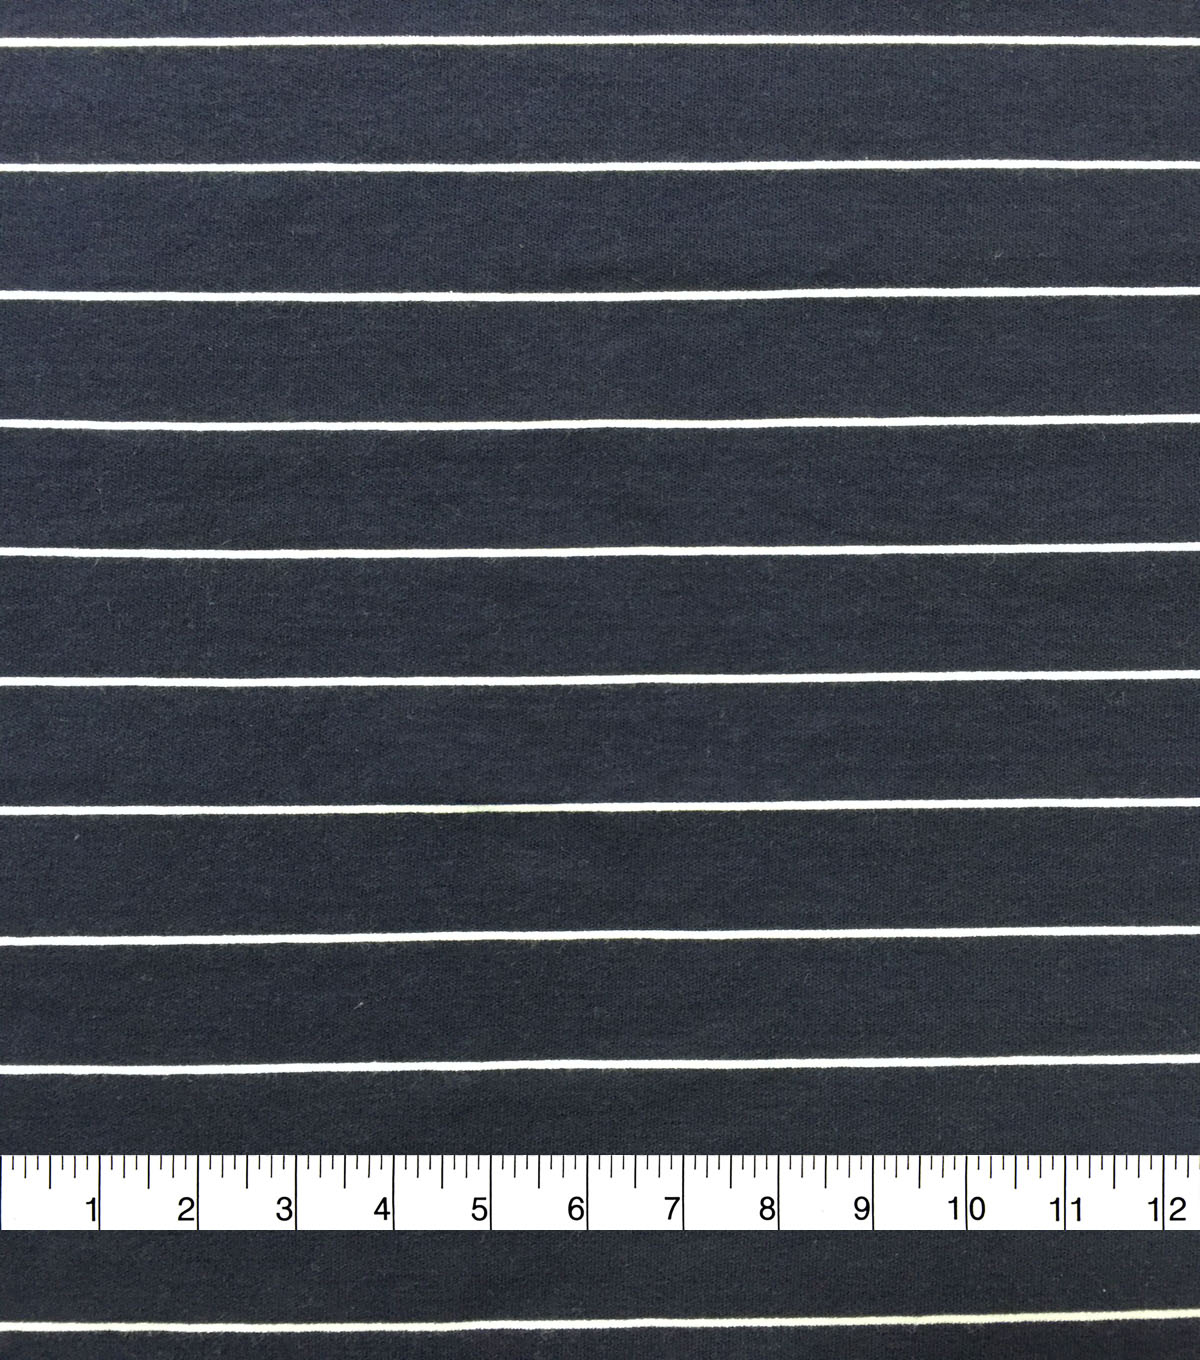 Doodles Cotton & Spandex Interlock Fabric-Navy & White Stripes